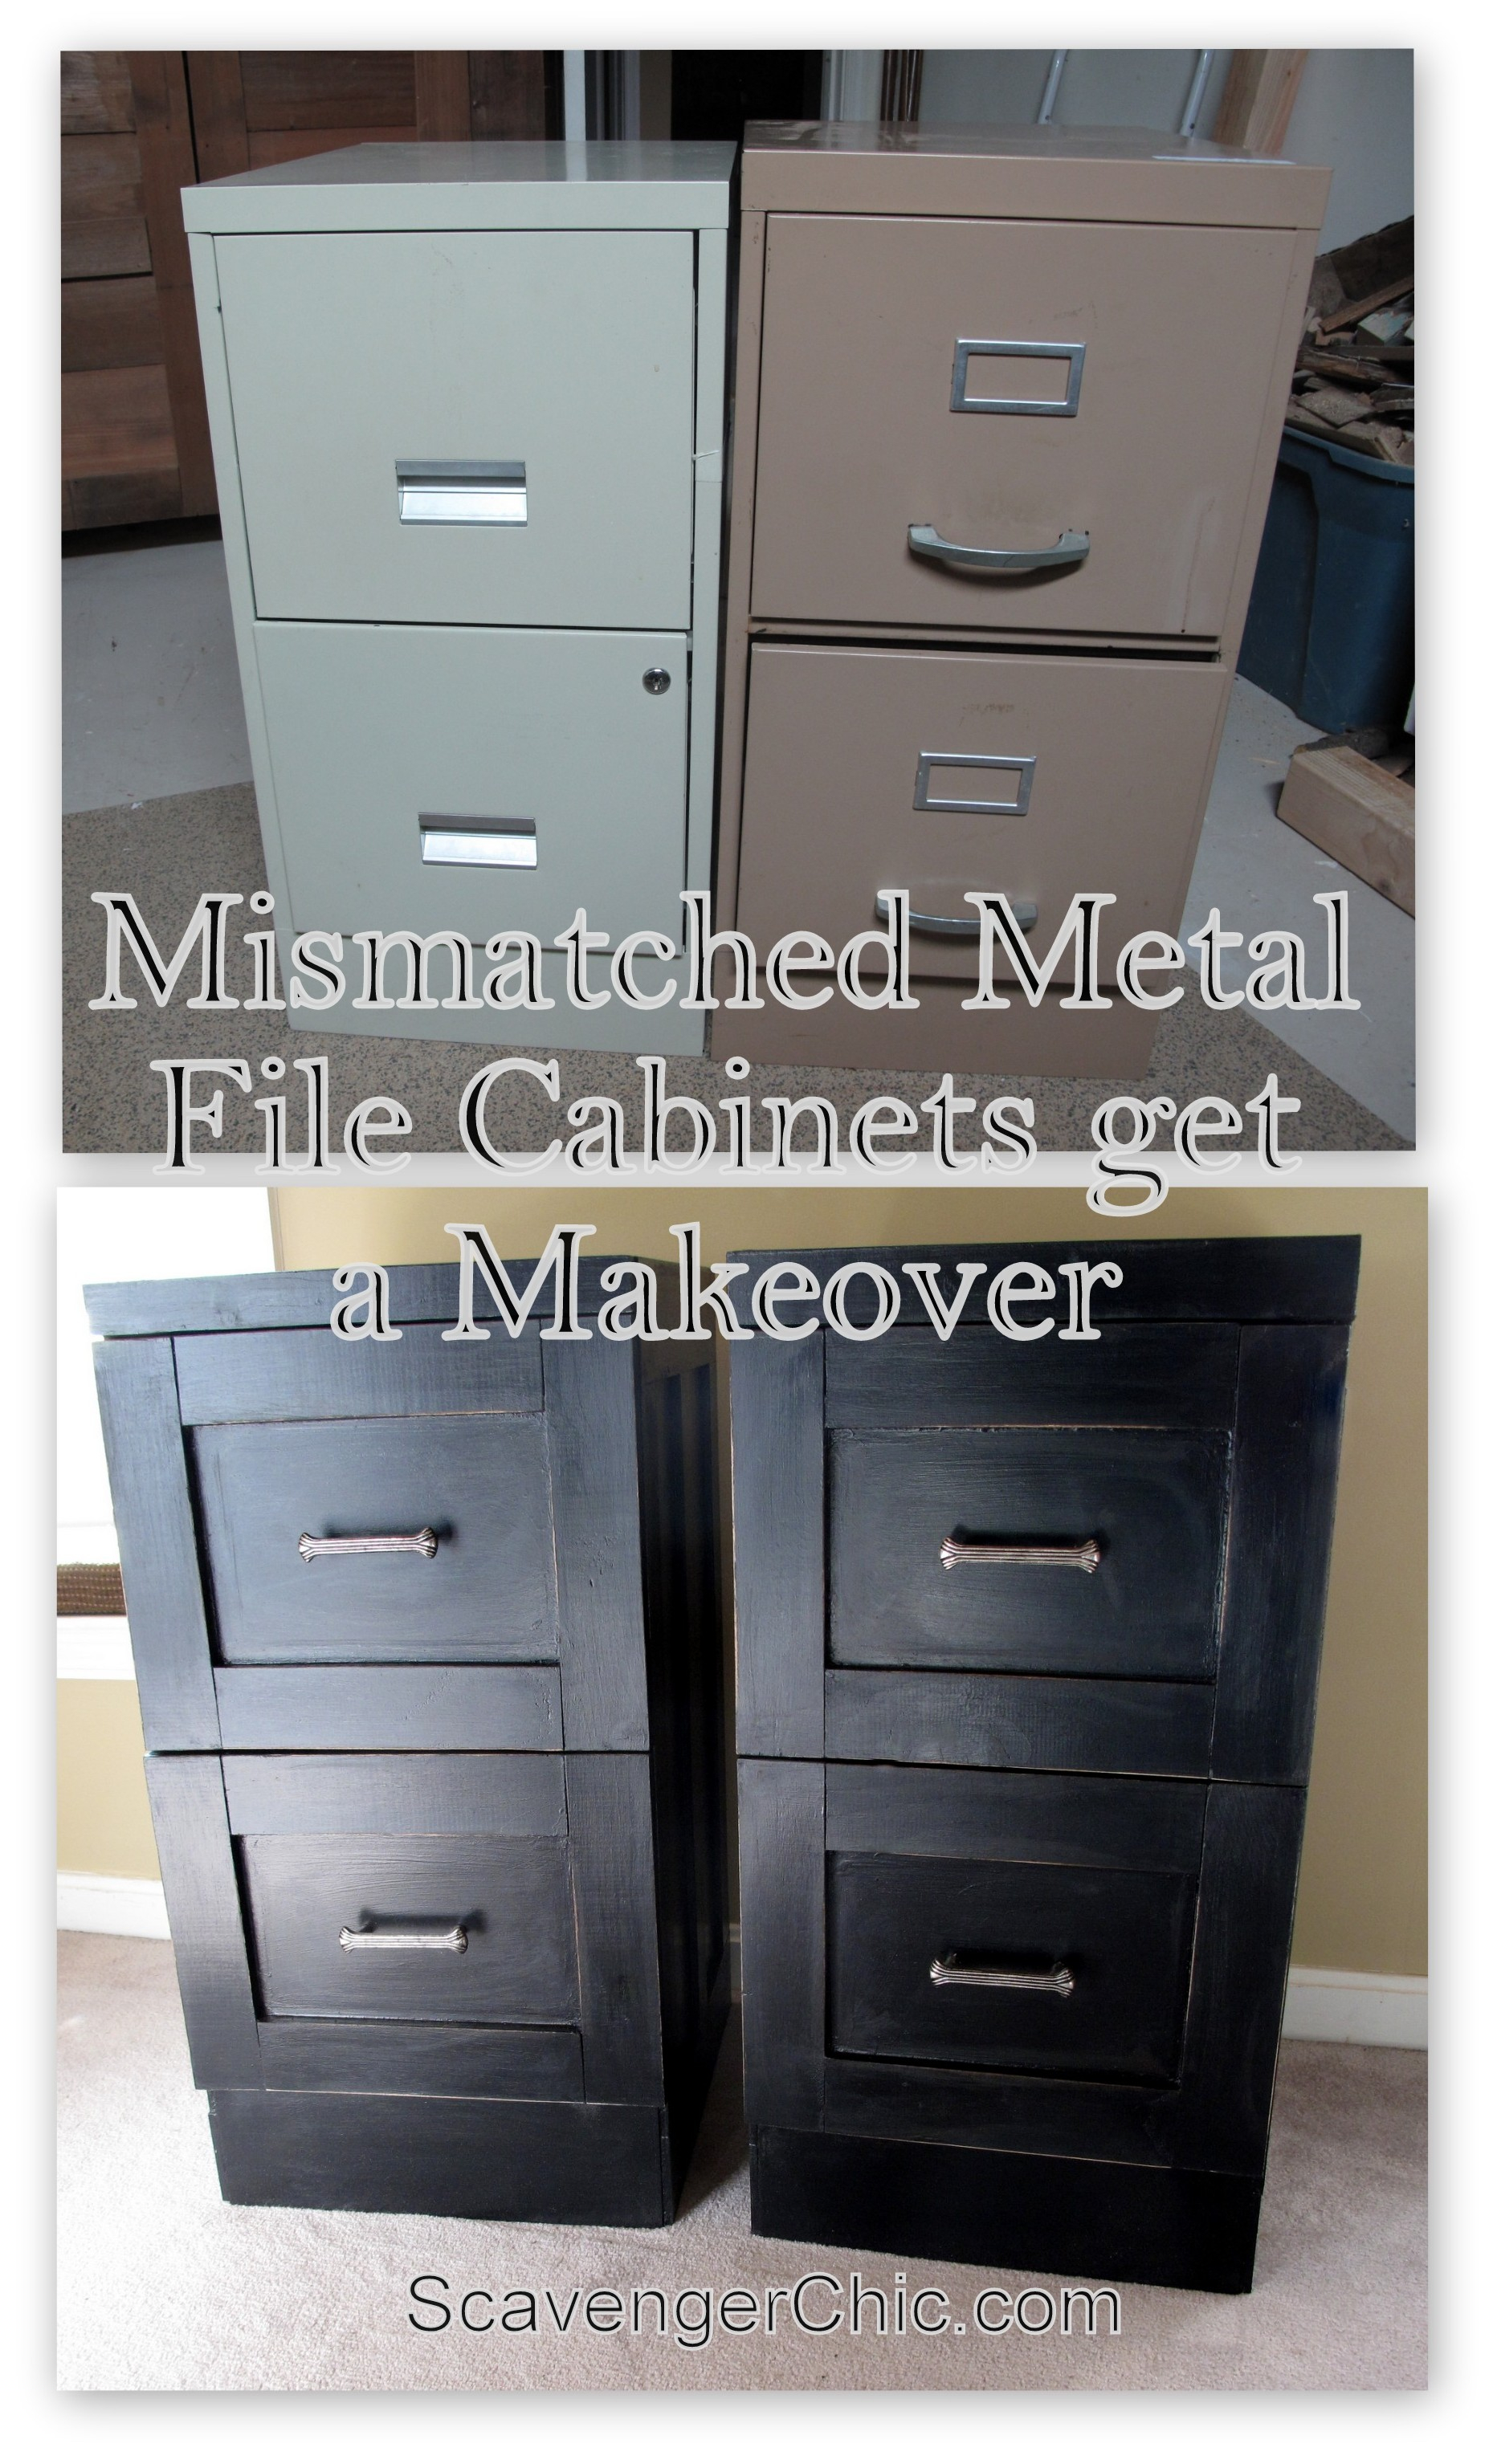 Mismatched Metal File Cabinets Get A Makeover Scavenger Chic intended for sizing 1859 X 3069